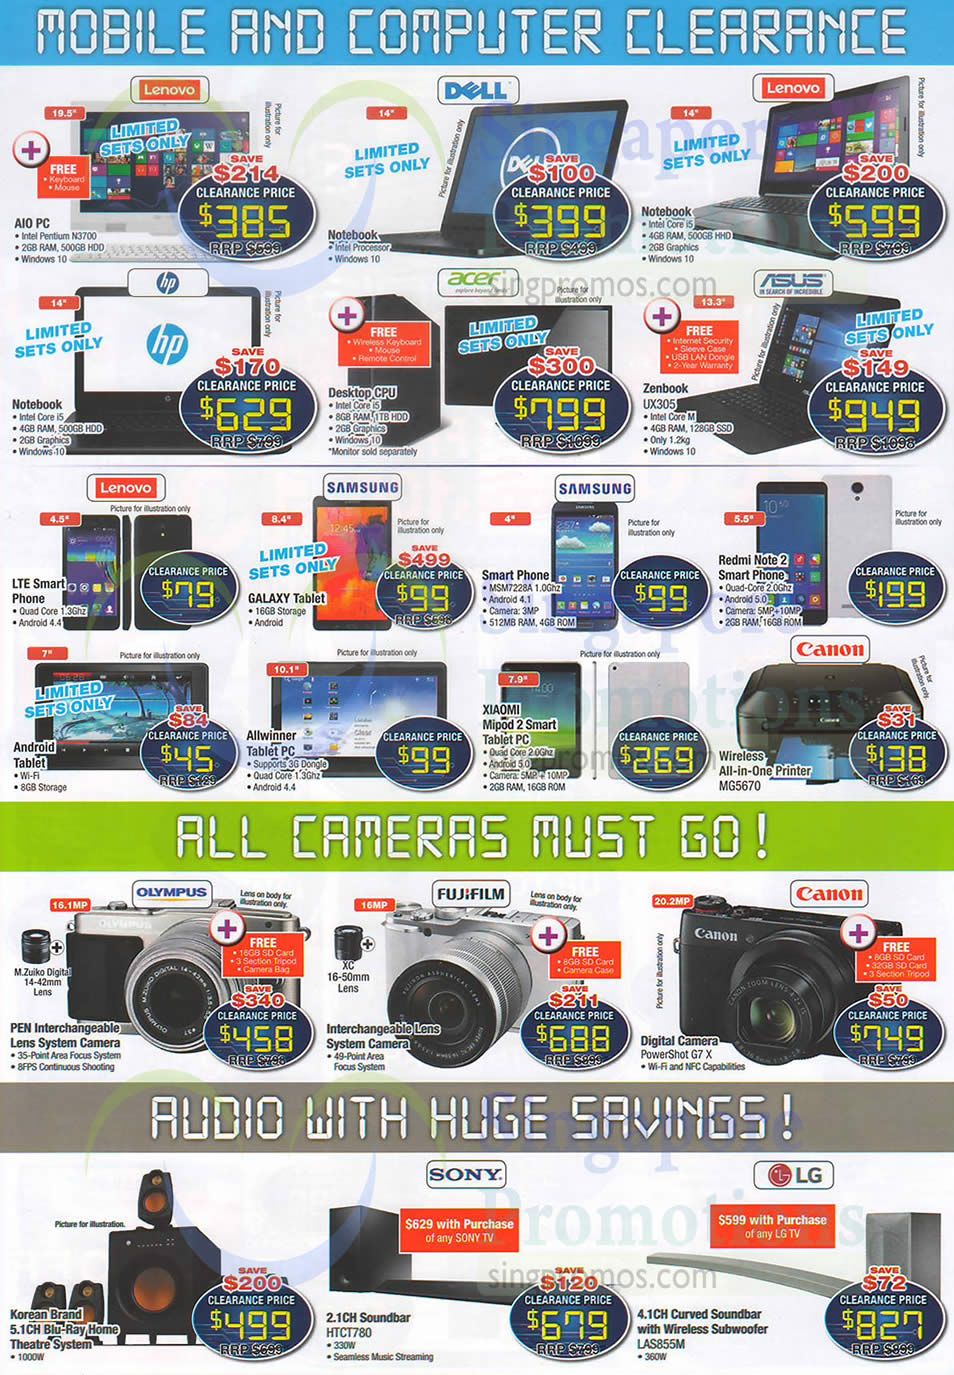 Mobile Phones, Notebooks, Cameras, Speakers, Home Theatre Systems